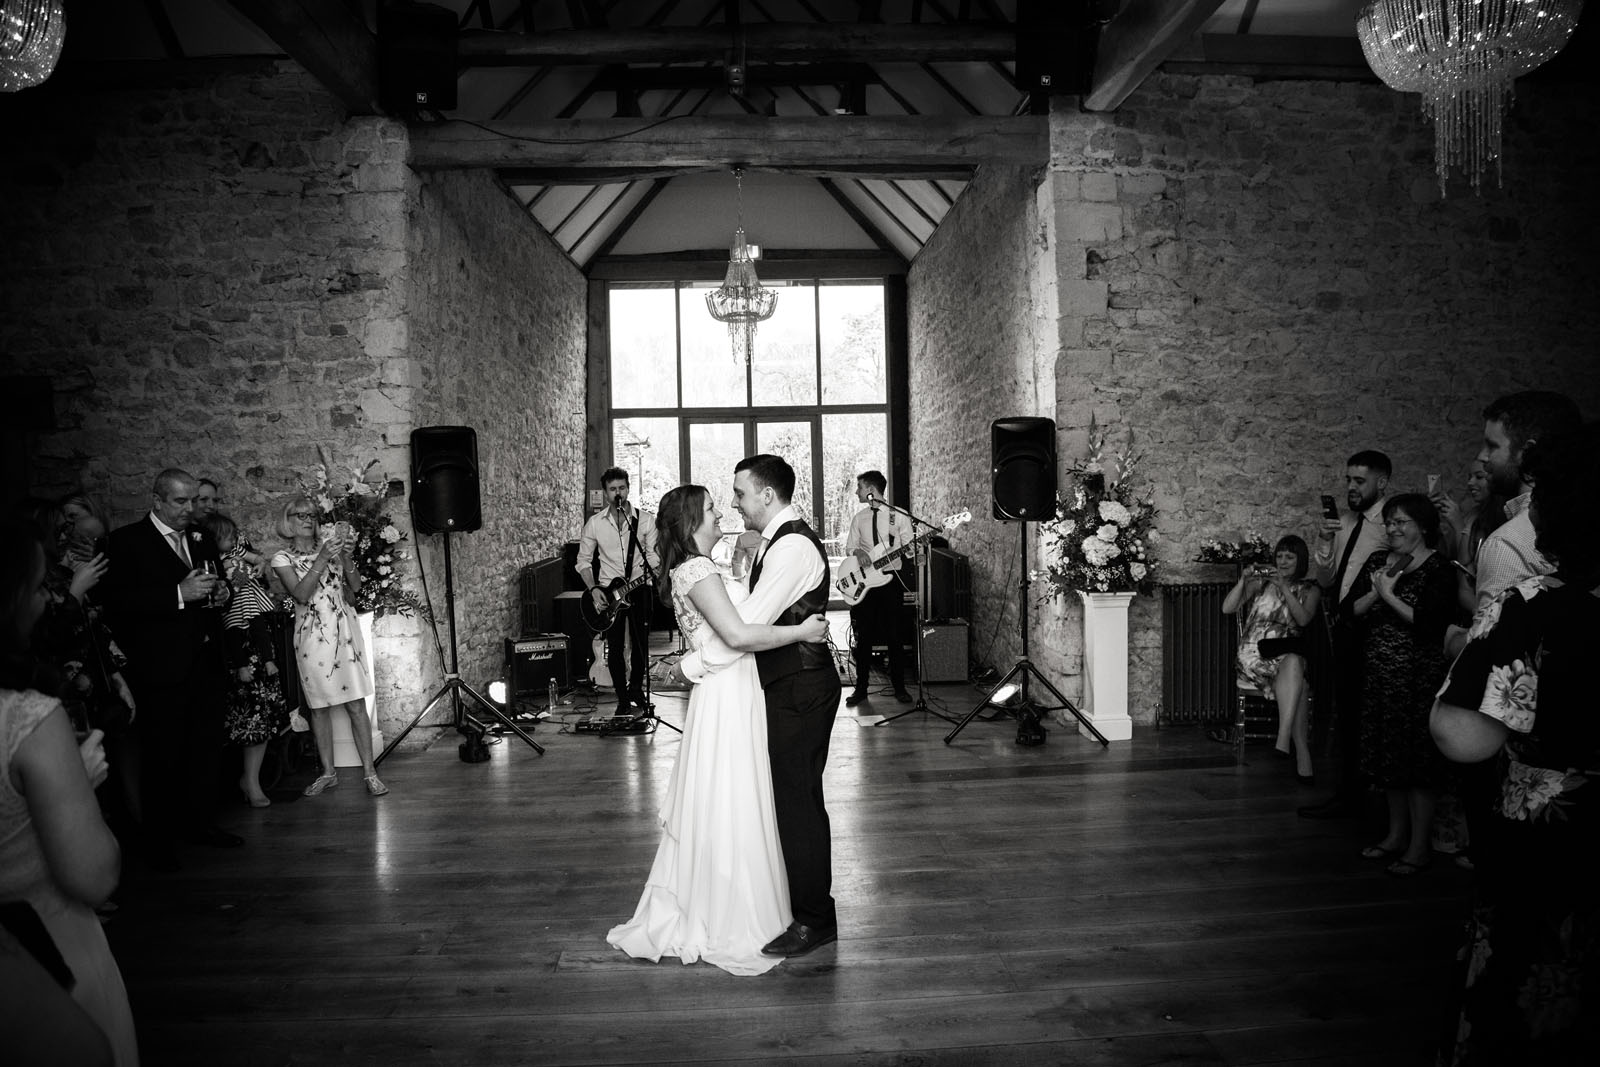 Notley Abbey Wedding venue - first dance